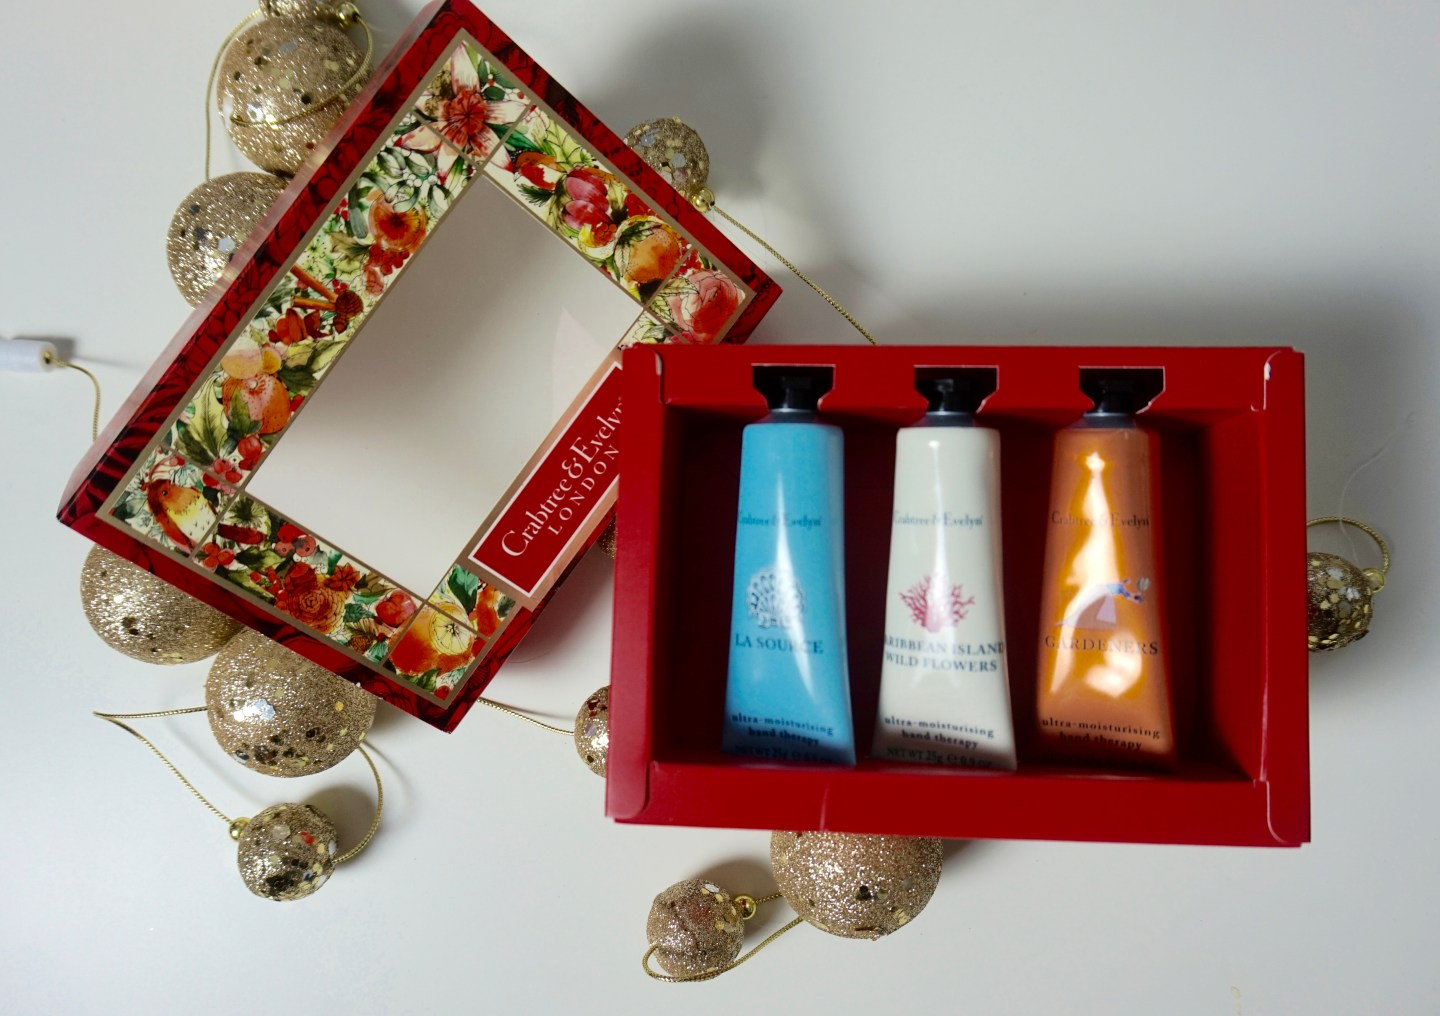 crabtree-evelyn-london-raychel-says-christmas-gift-guide-hand-cream-la -source-caribbean-wildflowers